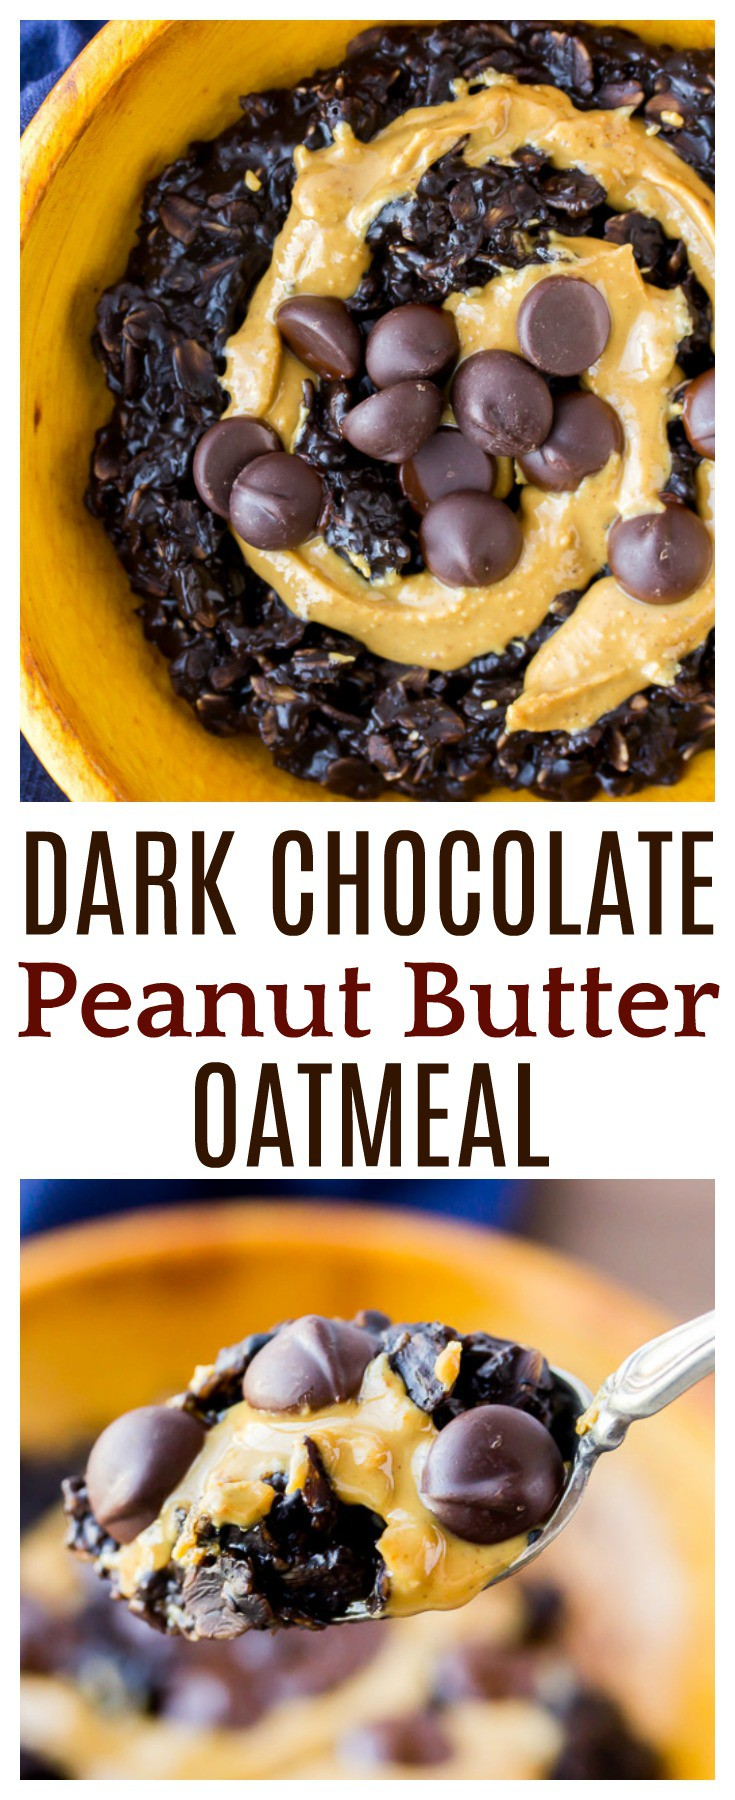 Dark Chocolate Peanut Butter Oatmeal is a simple breakfast recipe to start the day! Made with unsweetened almond milk, chia seeds, and maple syrup, it's actually a healthy option! There is no refined sugar and it can easily be made gluten free! | #oatmeal #breakfast